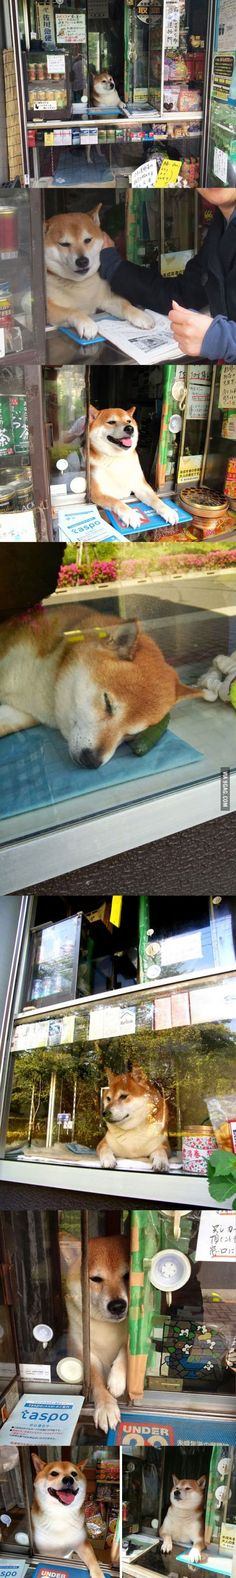 This doge works at a cigarette stand in Japan